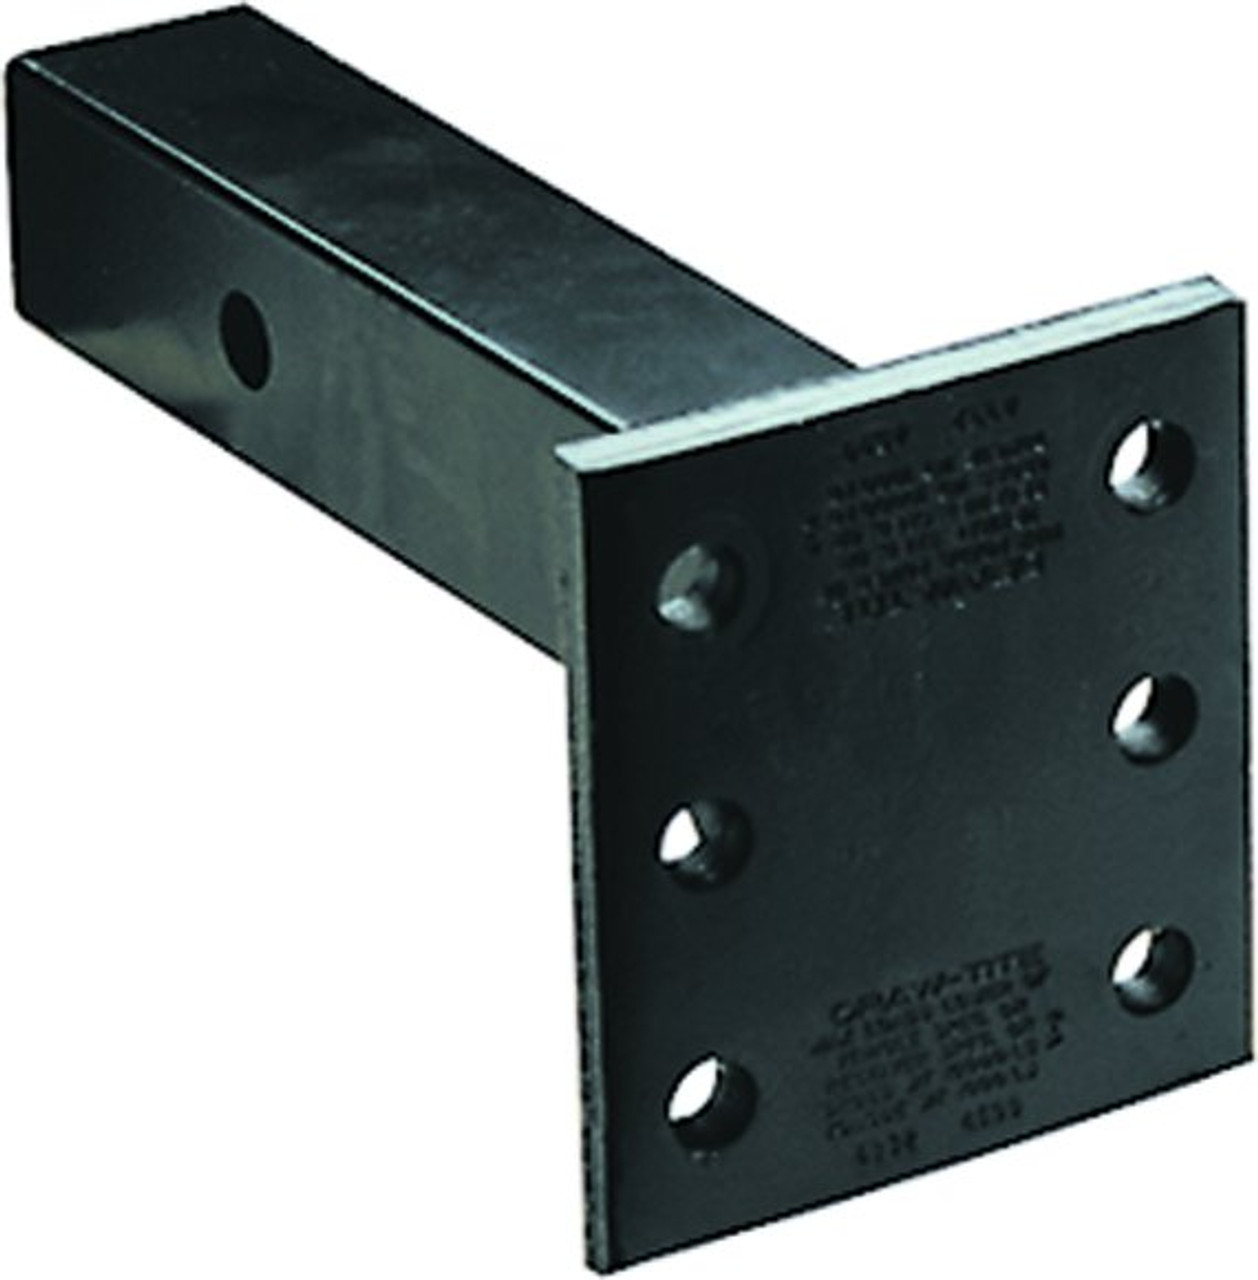 """6572 --- 2"""" Receiver Mounted Pintle Hook Adapter w/Long Shank - 6 Holes - 14,000 lb Capacity"""